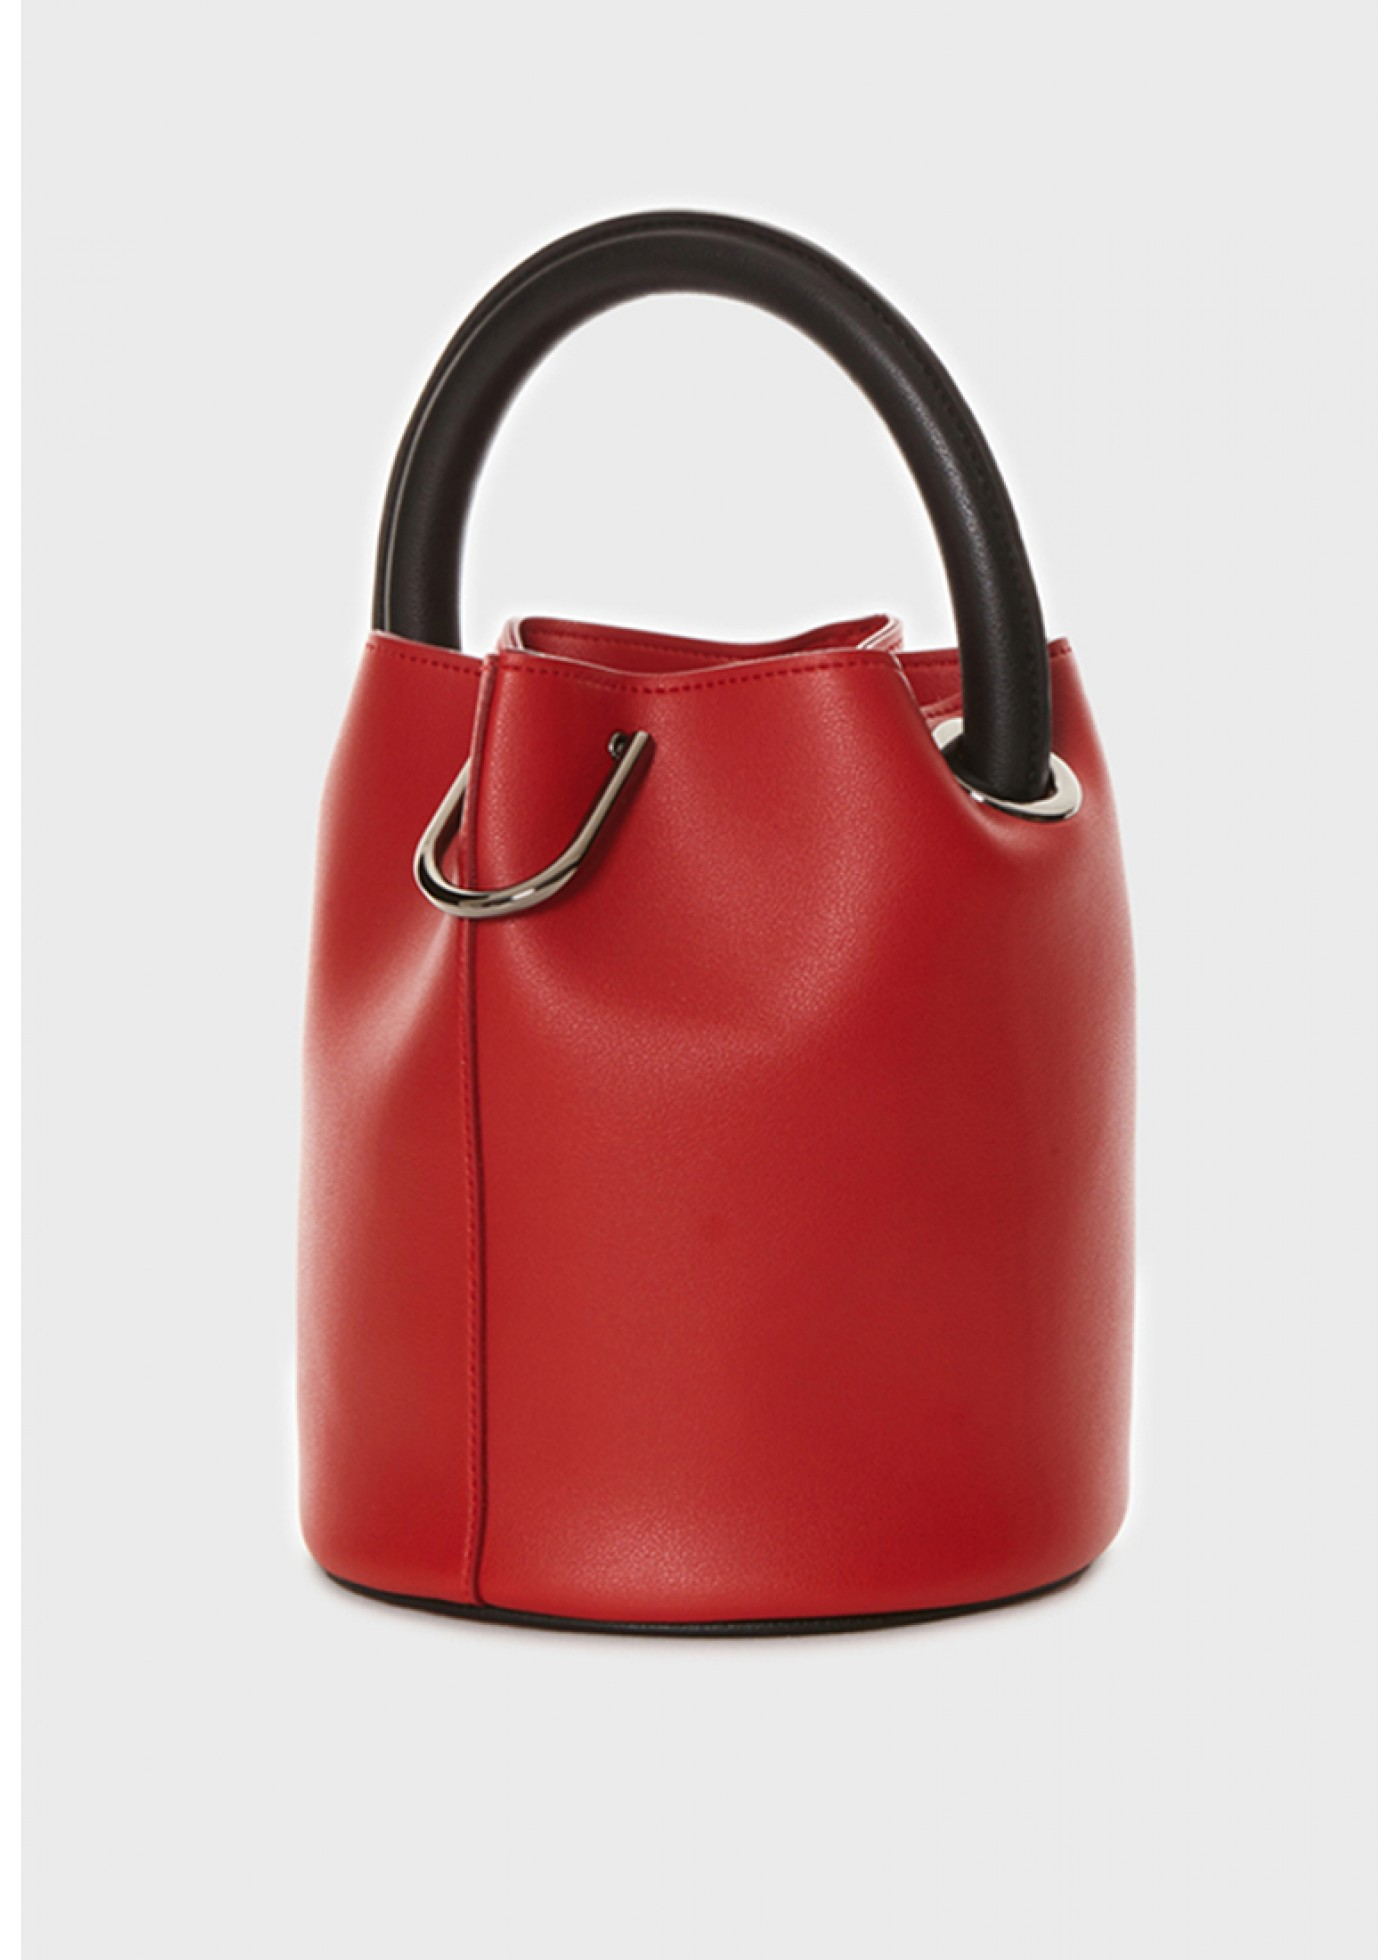 [HABIS] Goddess Talia Red Bag